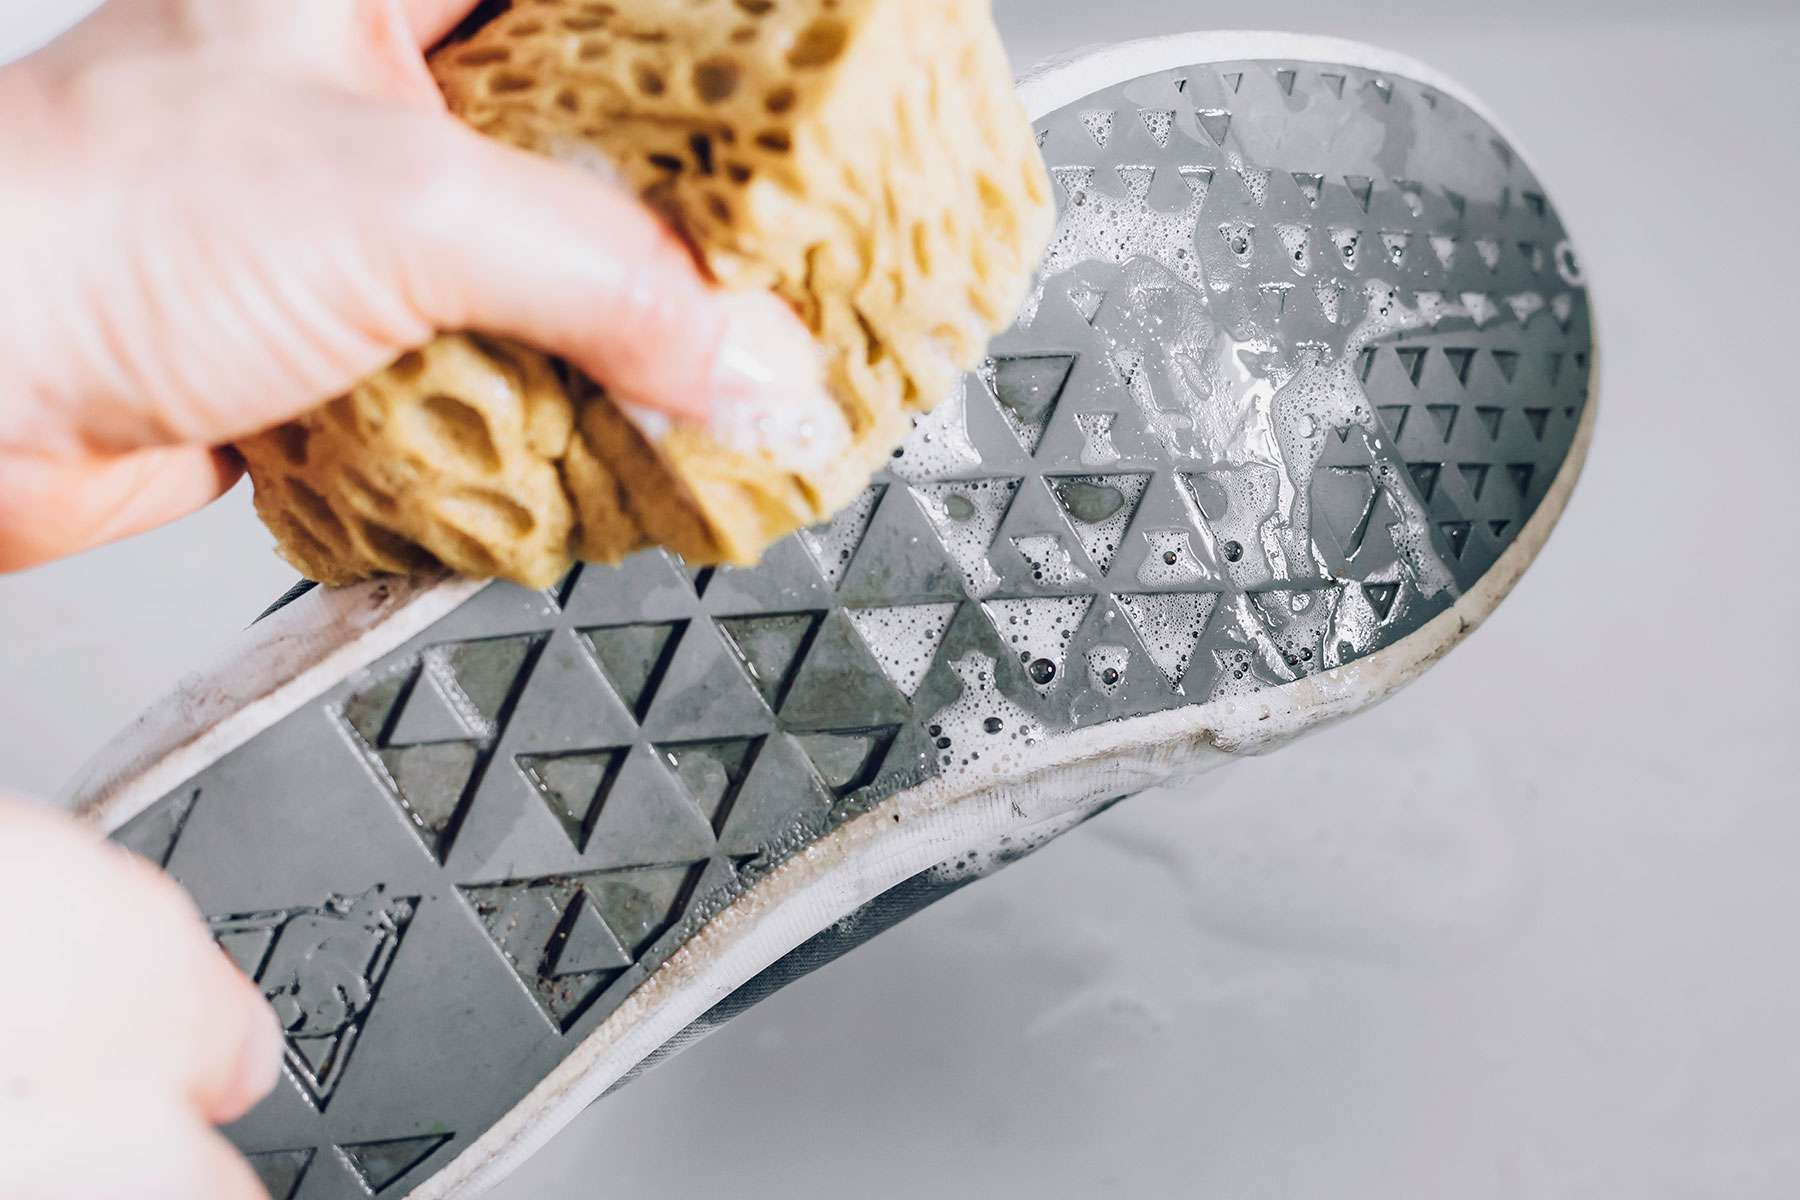 using a sponge to scrub the shoes